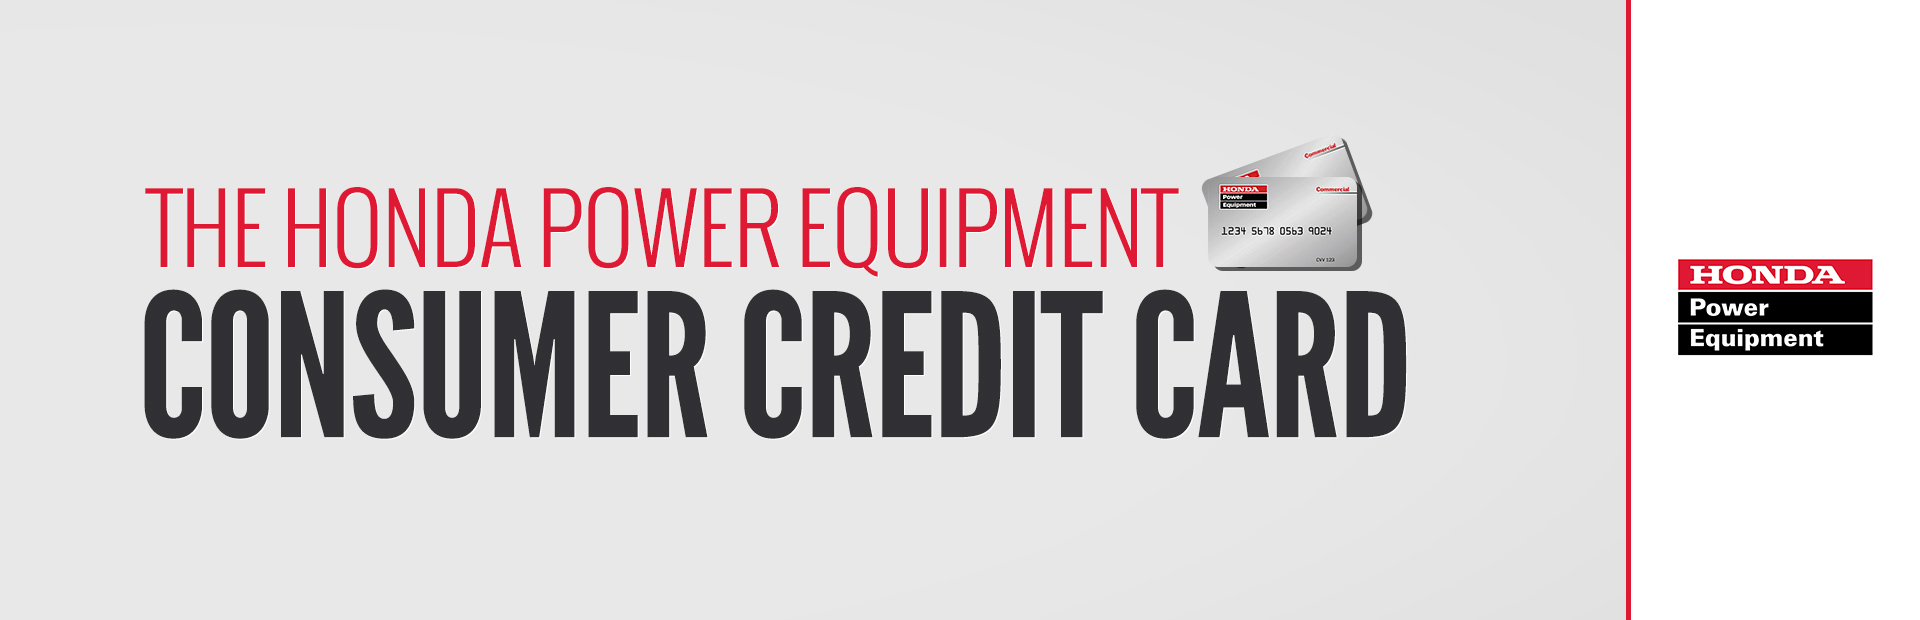 Honda Power Equipment: The Honda Power Equipment Consumer Credit Card